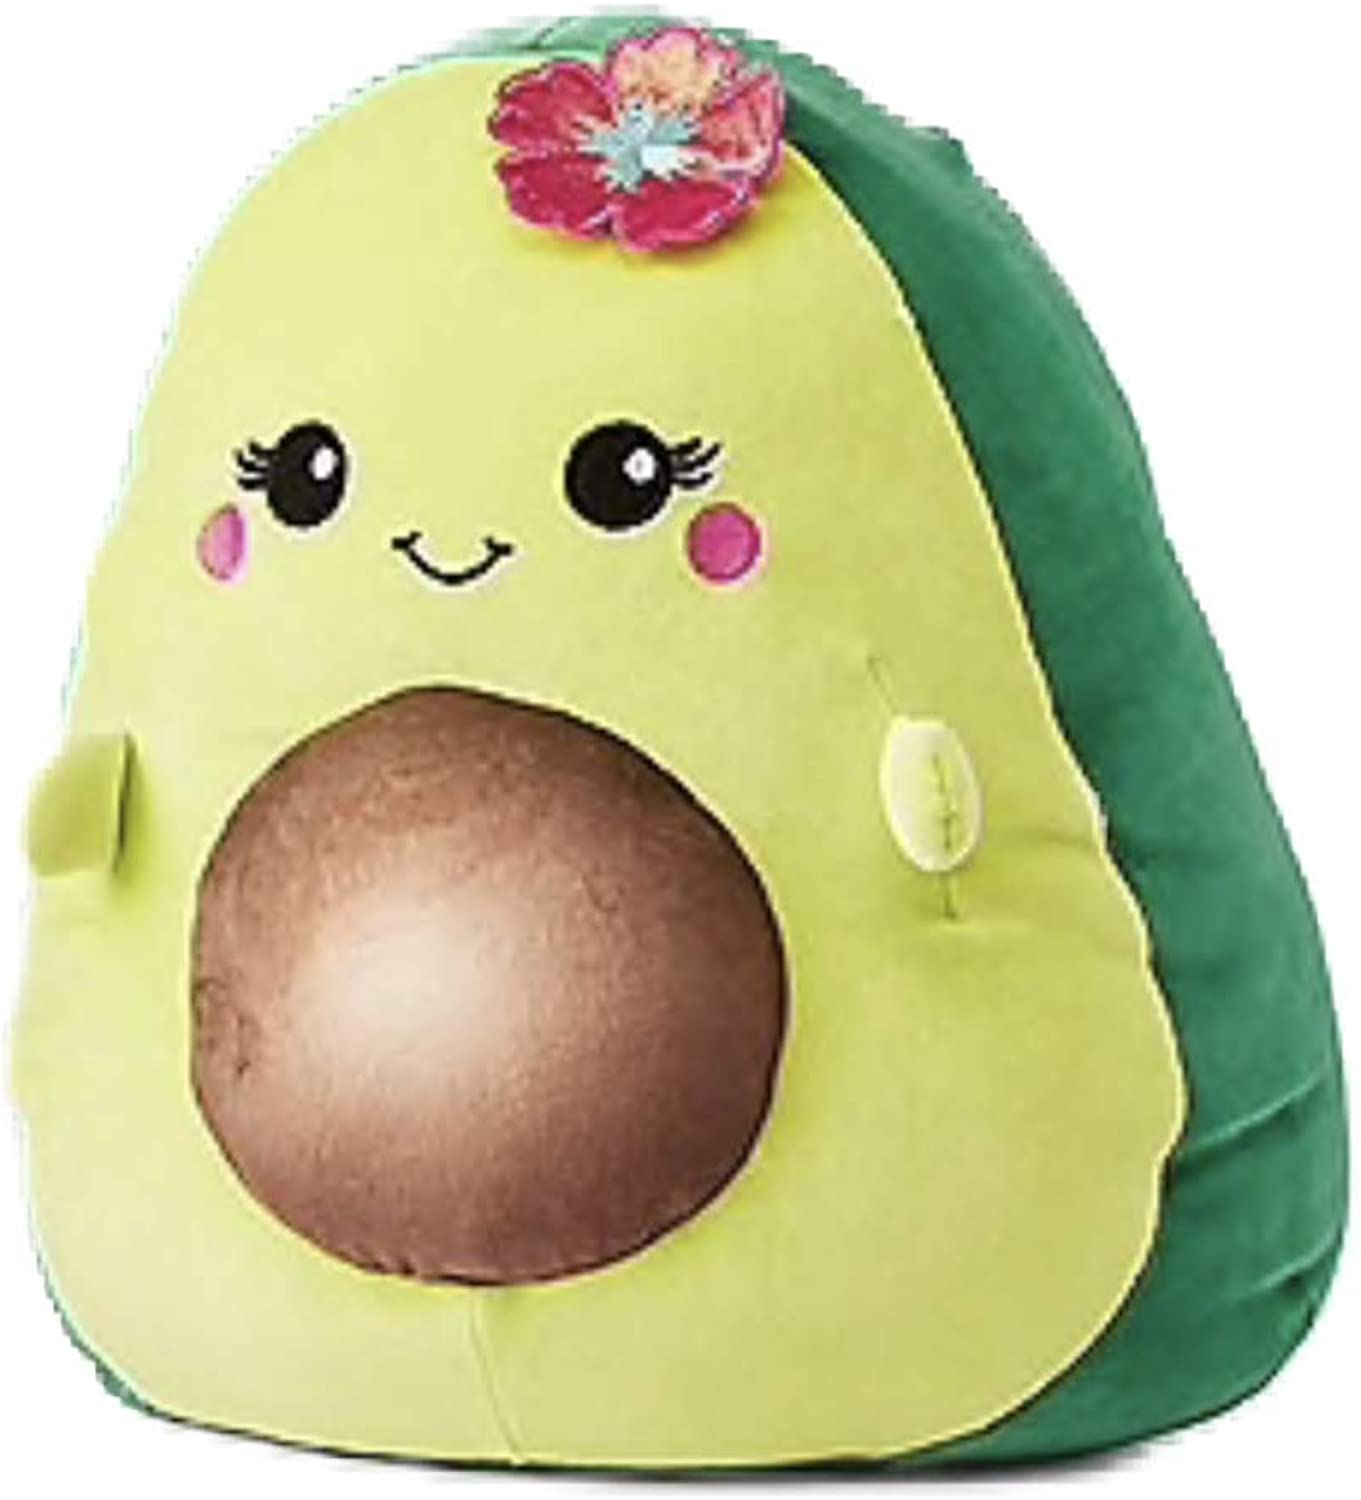 Squishmallows Justice 16  Ava The Avocado Mixed Berry Scented Green Super Soft Plush Pillow Stuffed Animal